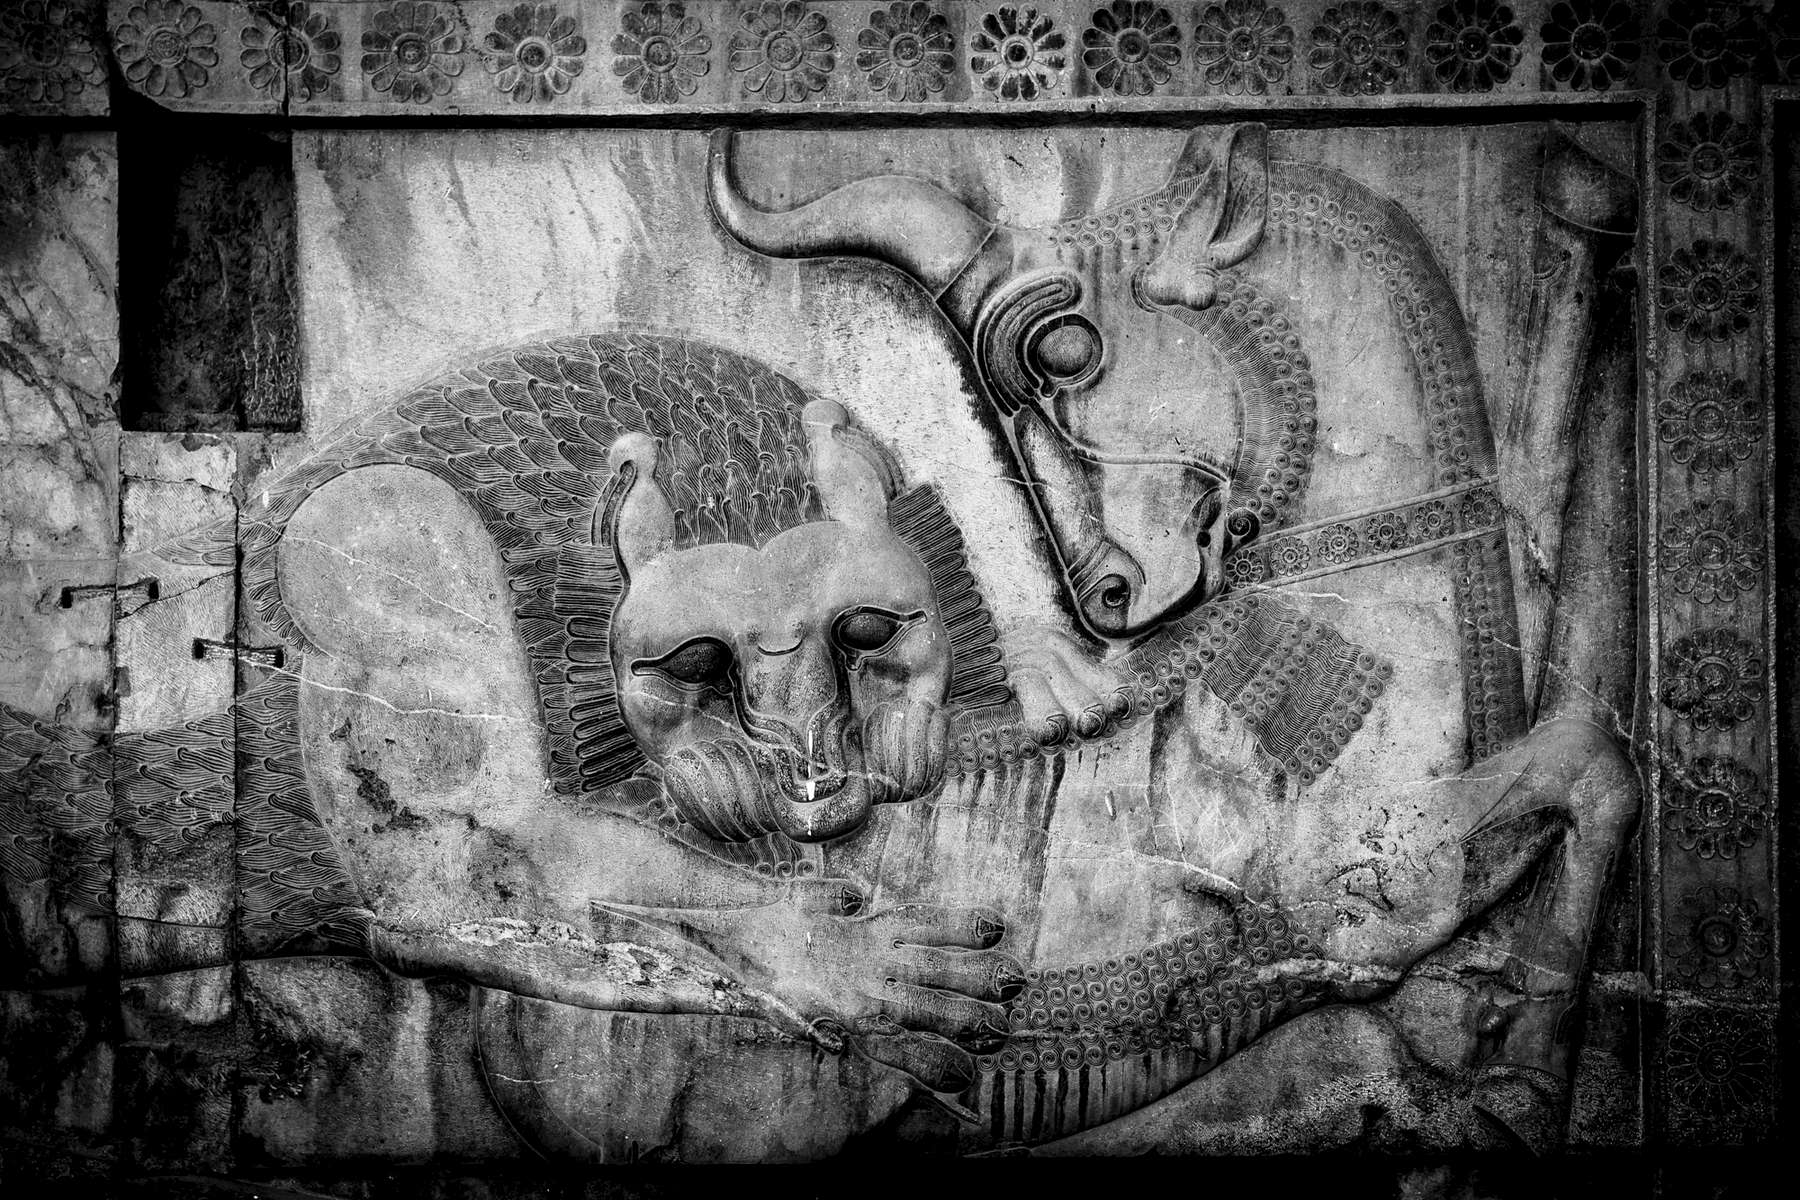 Bas-relief on the walls of Persepolis.